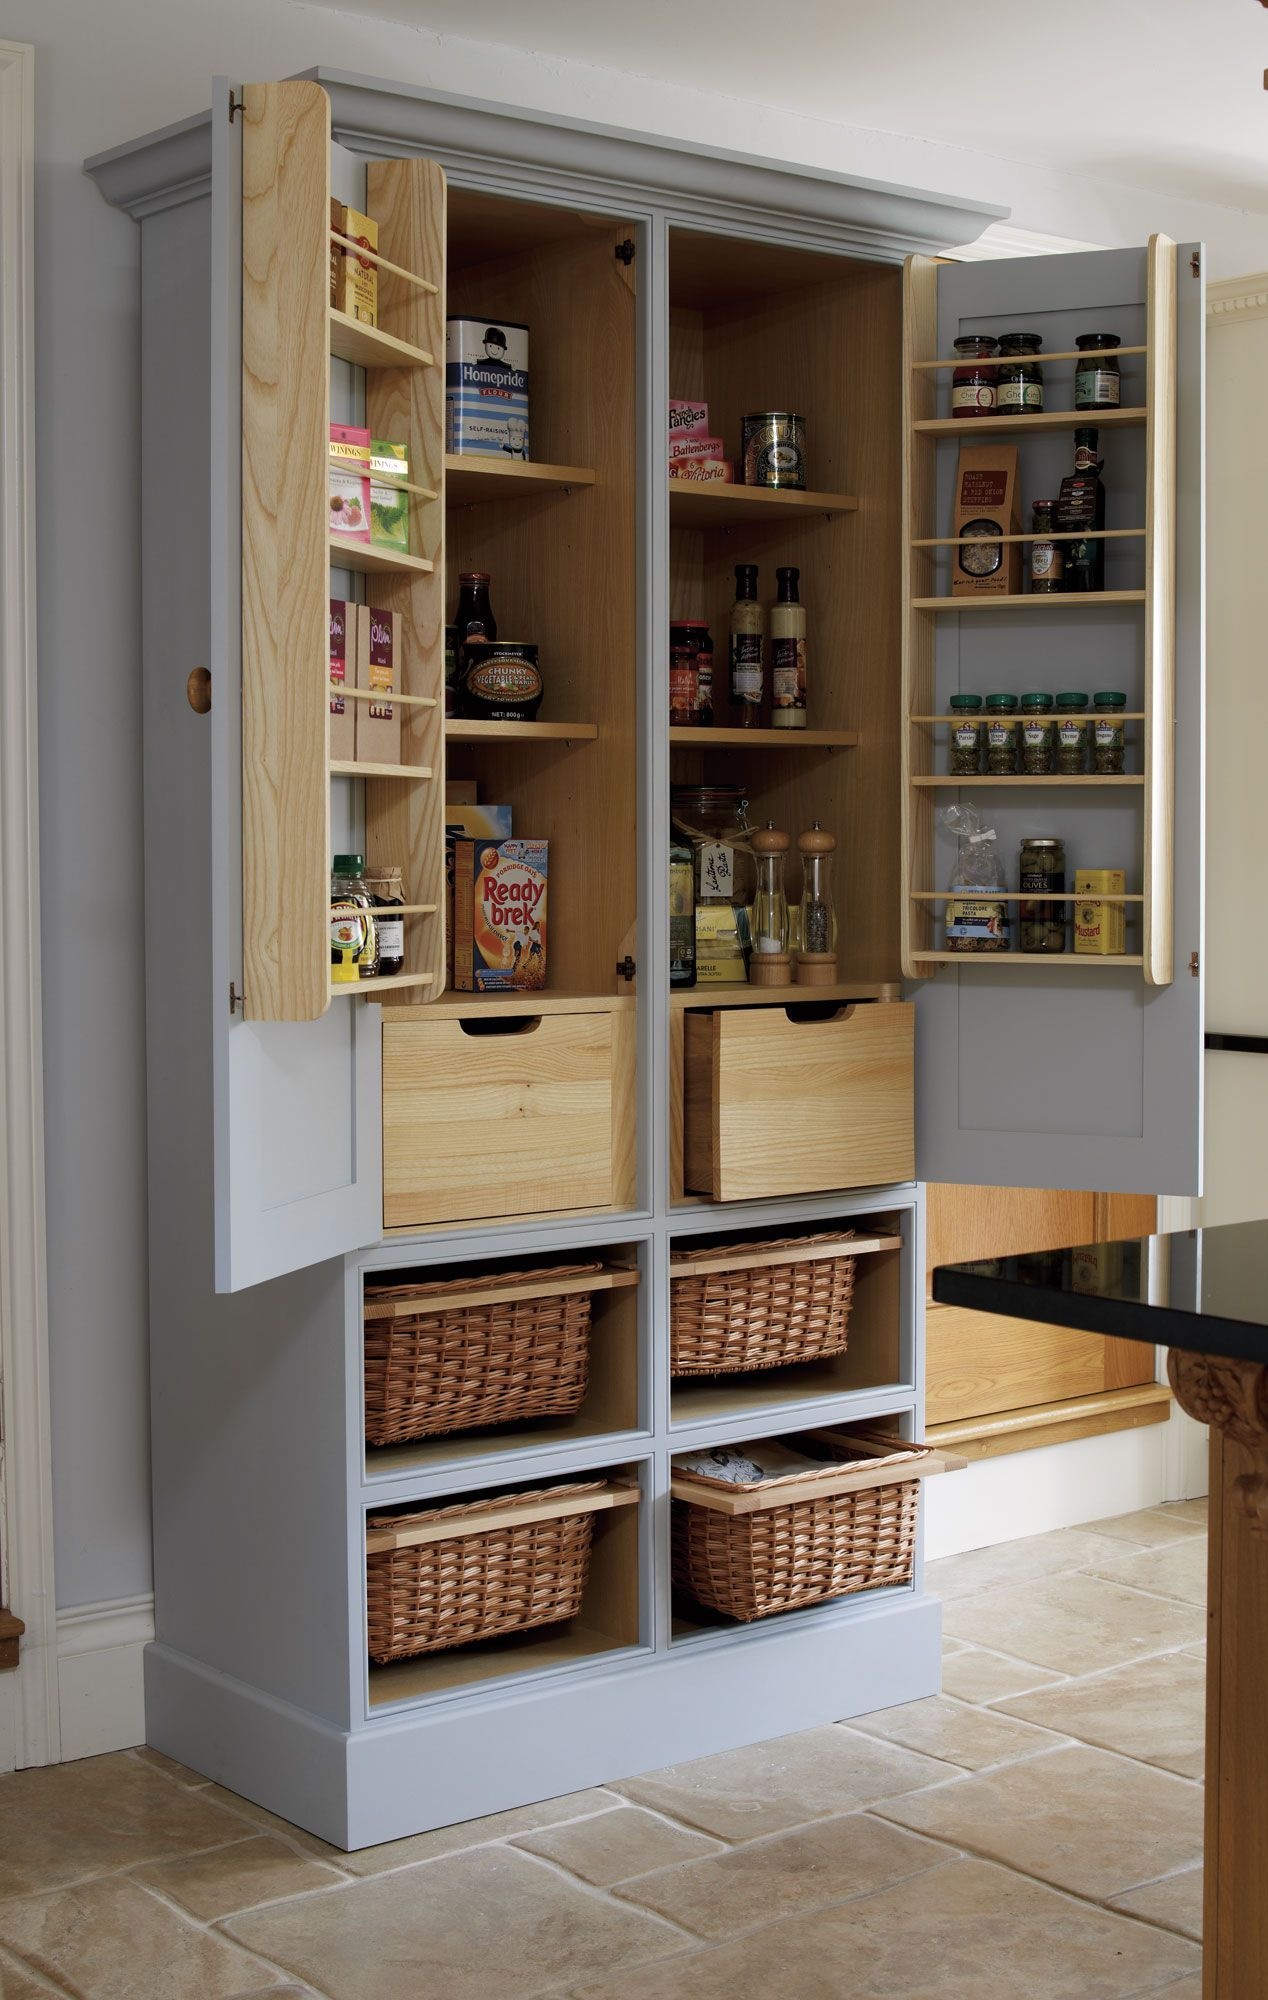 15+ Unique Kitchen Storage Ideas - BEST Photos and Galleries ... on kitchen half wall ideas, kitchen sponge storage ideas, french country kitchen ideas, cheap kitchen storage ideas, kitchen remodeling ideas for small kitchens, kitchen vegetable bins for storage, kitchen cabinet accessories roll out shelving, cabinets storage ideas, kitchen islands with seating, kitchen organization ideas, kitchen backsplash ideas, kitchen cart storage ideas, traditional kitchen ideas, kitchen with storage, kitchen islands with breakfast bar, kitchen rustic tiny house, pantry storage ideas, kitchen cupboard storage ideas, kitchen designs for small spaces, kitchen countertop ideas,